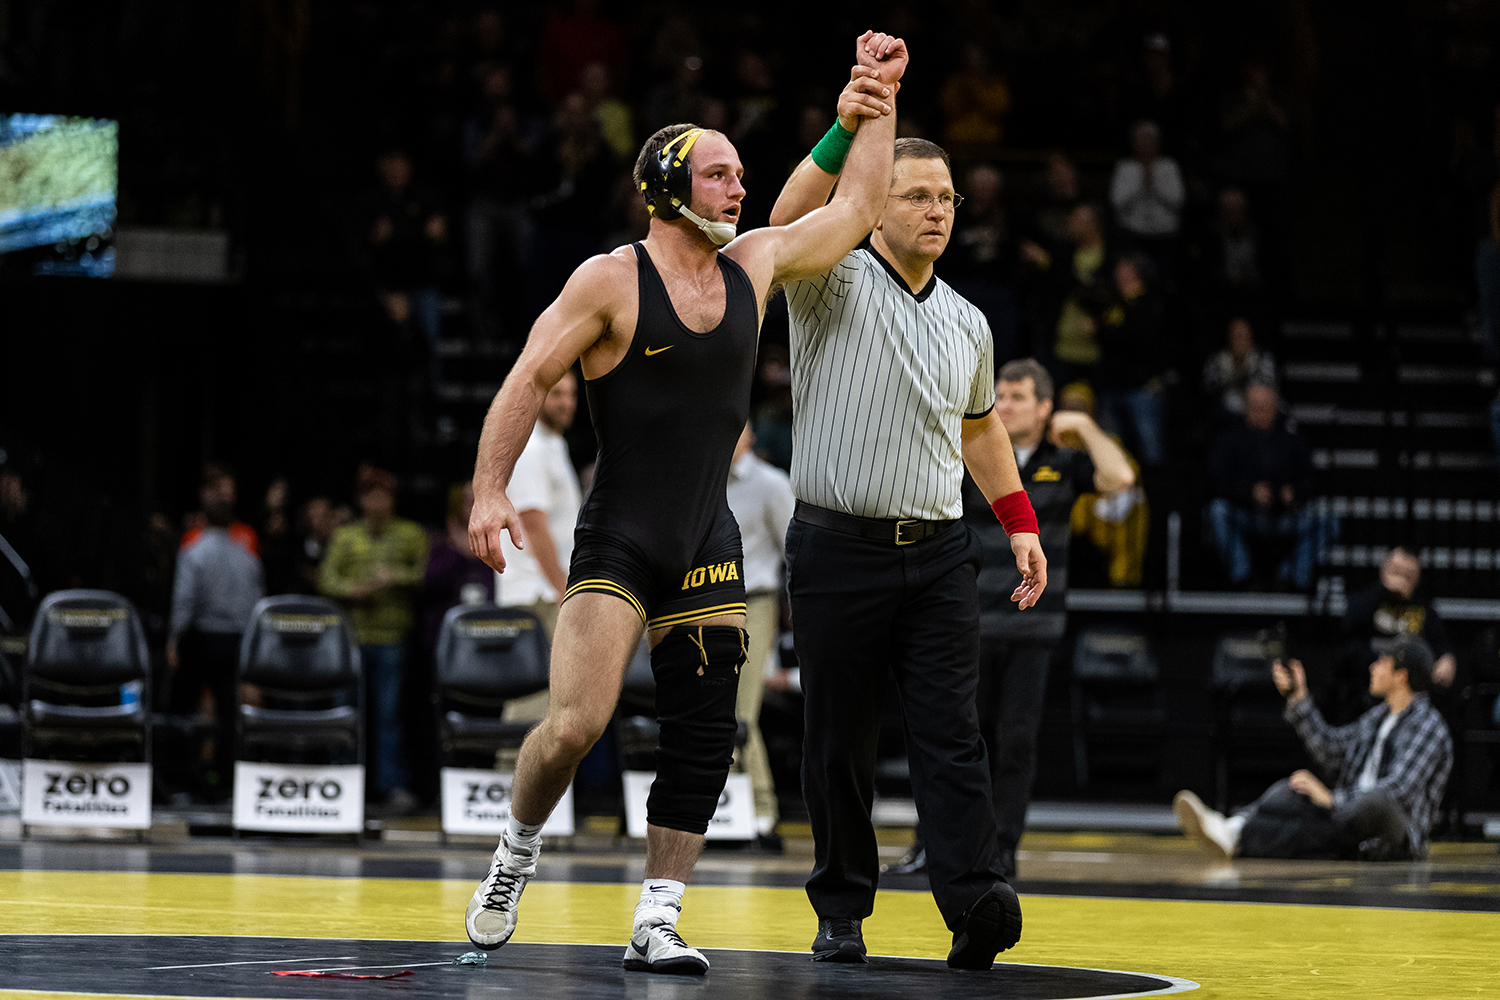 Iowa's No. 4 ranked Alex Marinelli celebrates defeating Princeton's Dale Tiongson in a 165-pound wrestling match at Carver-Hawkeye Arena on Friday, Nov. 16, 2018.